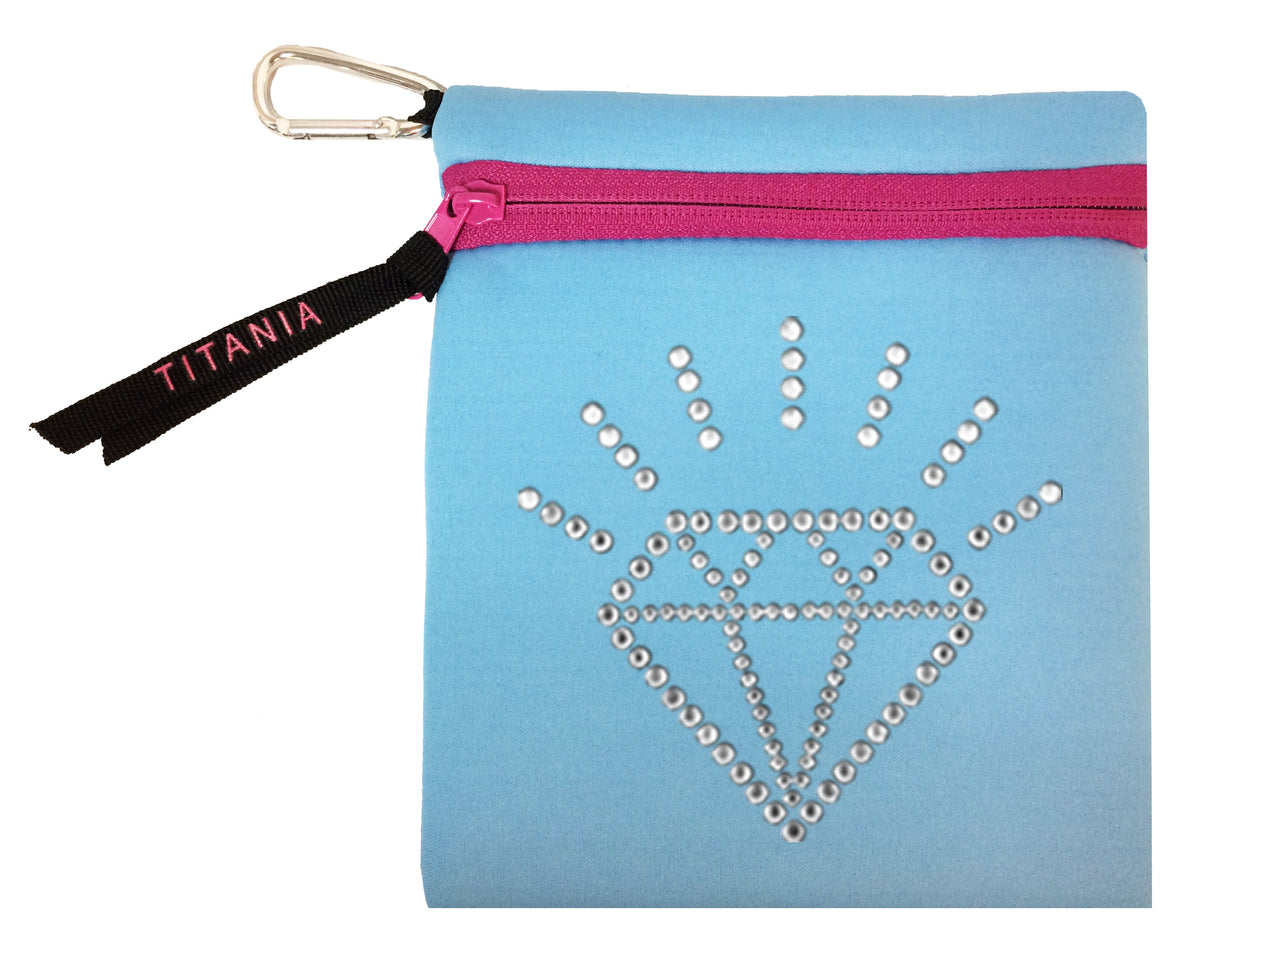 Neon Carryall - Diamond